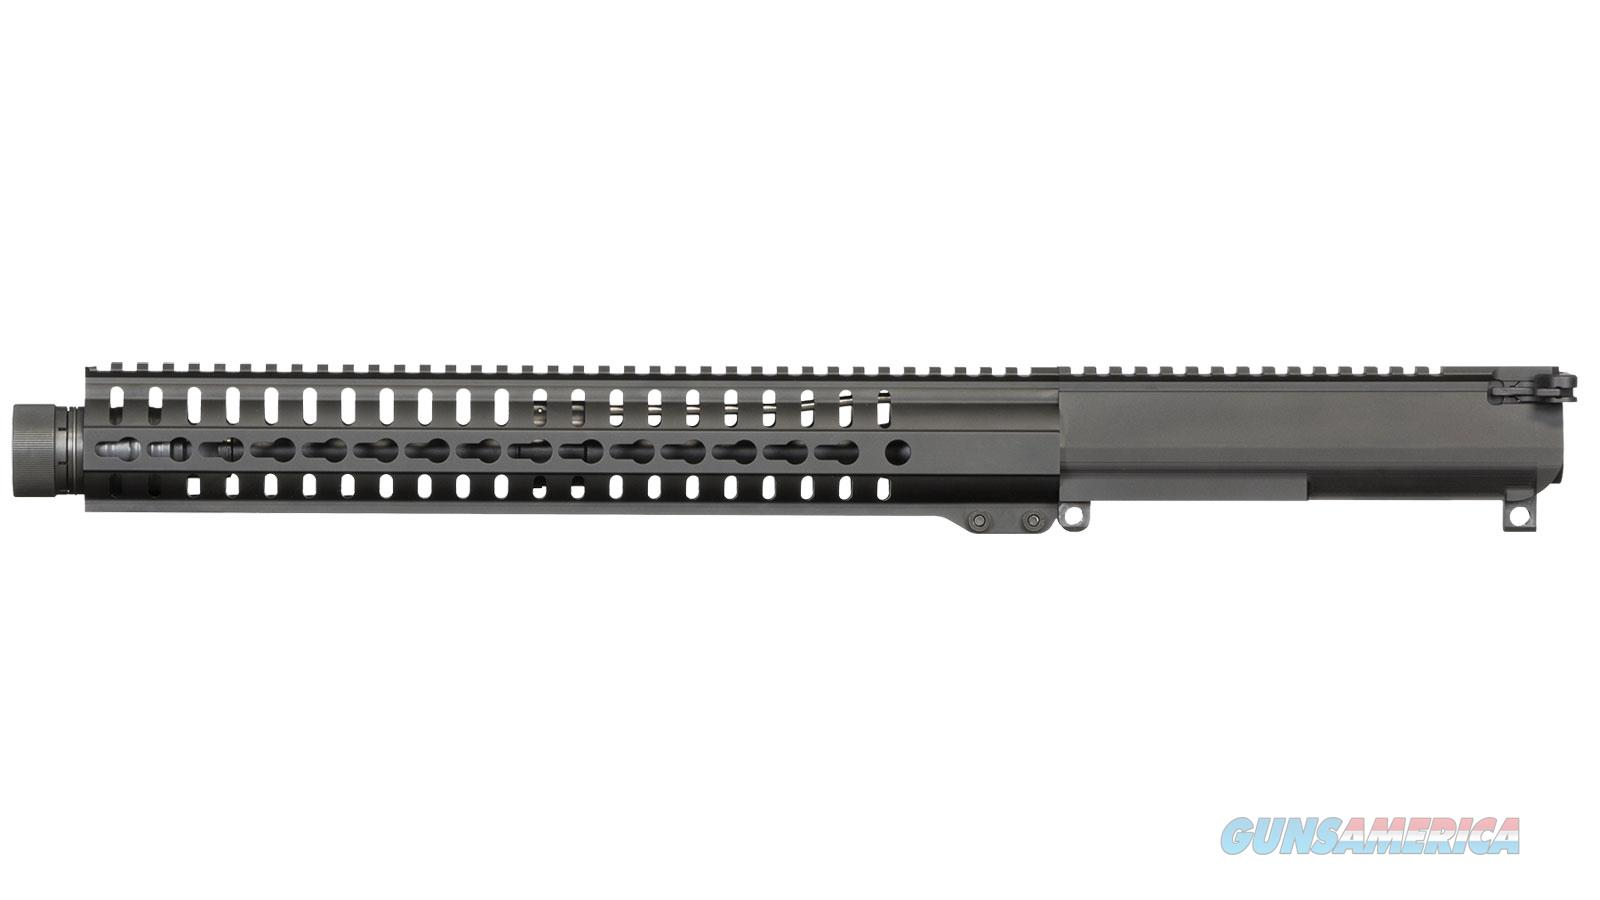 Cmmg Upper Mk47 Krink Aks13 76B996D  Non-Guns > Gun Parts > M16-AR15 > Upper Only